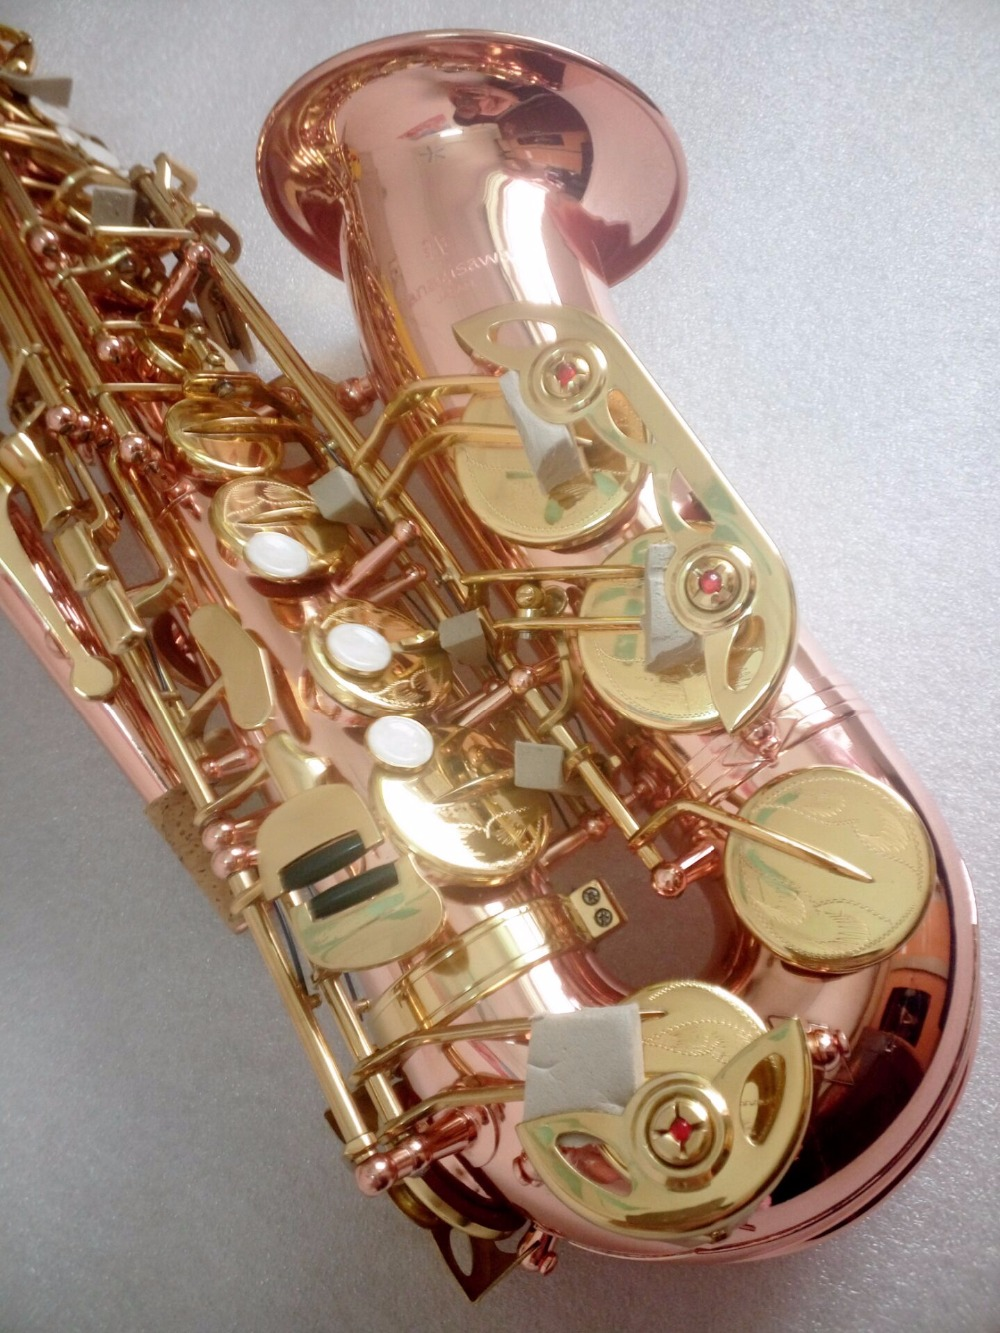 купить Japan Yanagisawa A-902 E flat Alto saxophone musical instruments High Quality plated phosphor bronze professional Sax Free по цене 22167.19 рублей